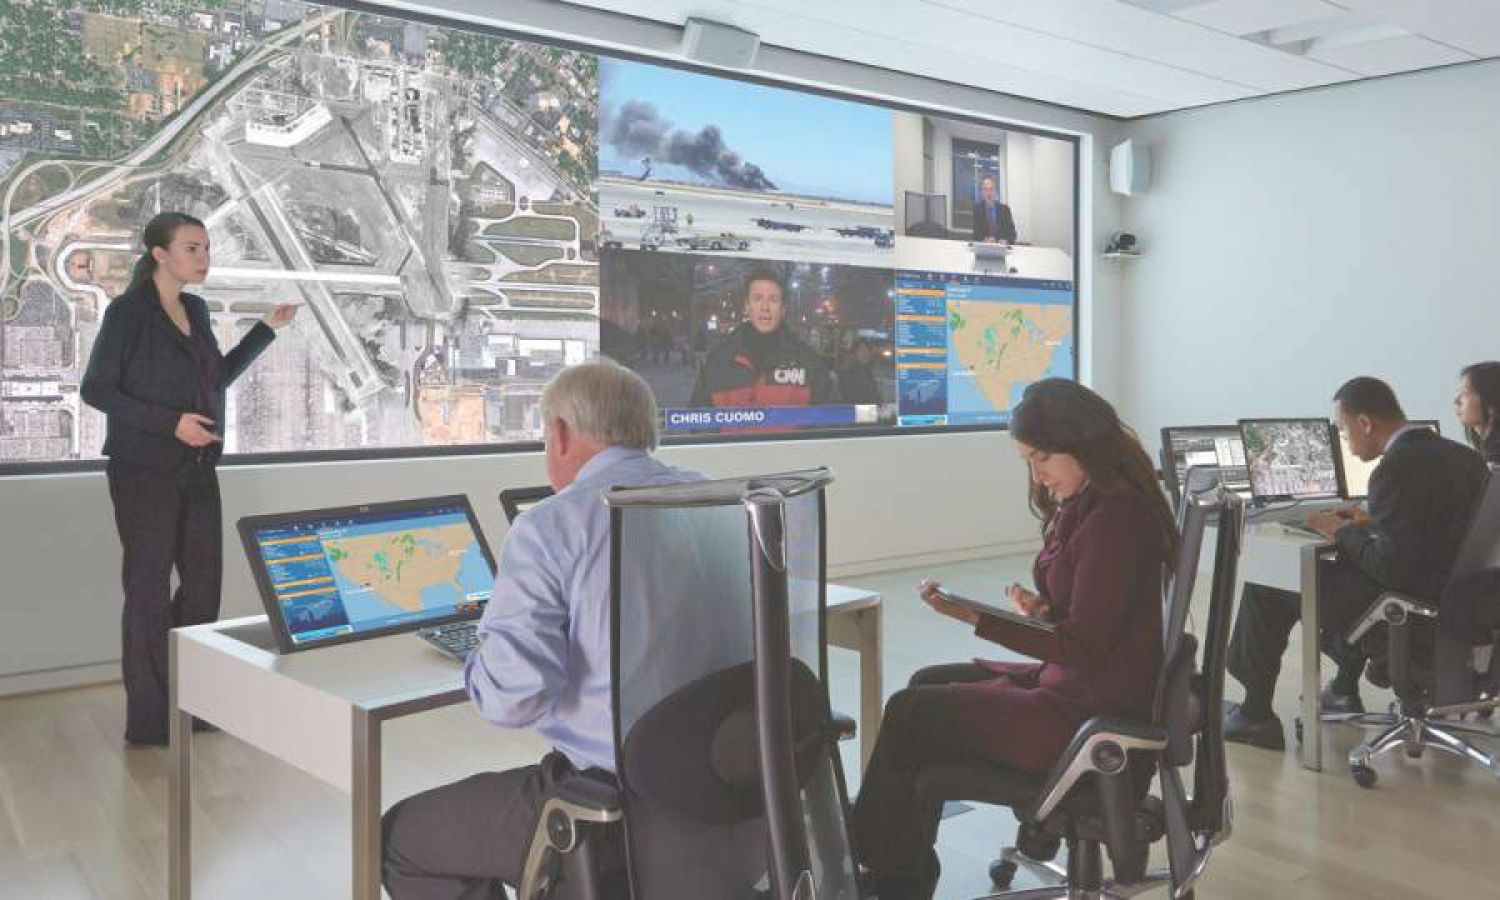 Robust solutions for secure, mission-critical environments